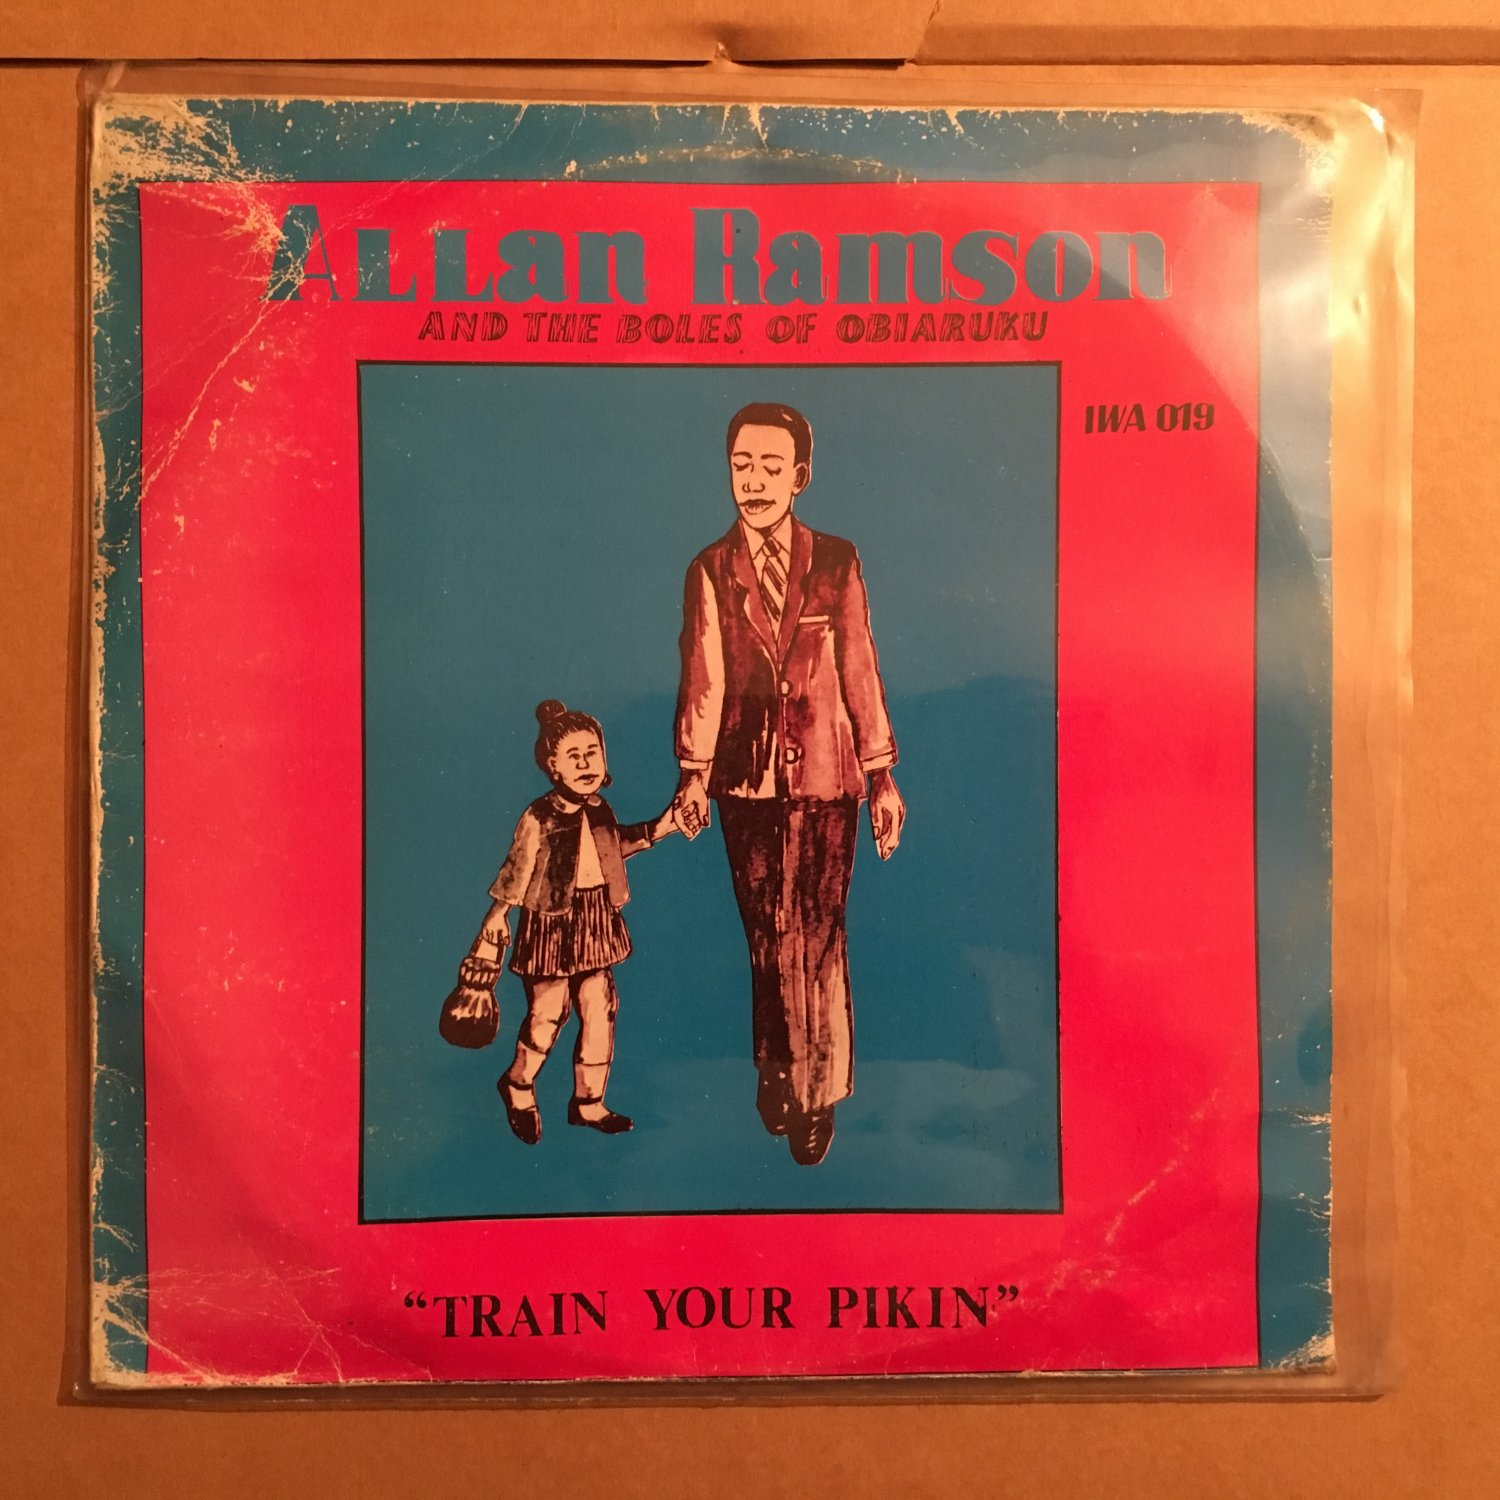 A.LLAN RANSOM & THE BOLES OF OBIARUKU LP train your pikin NIGERIA mp3 LISTEN